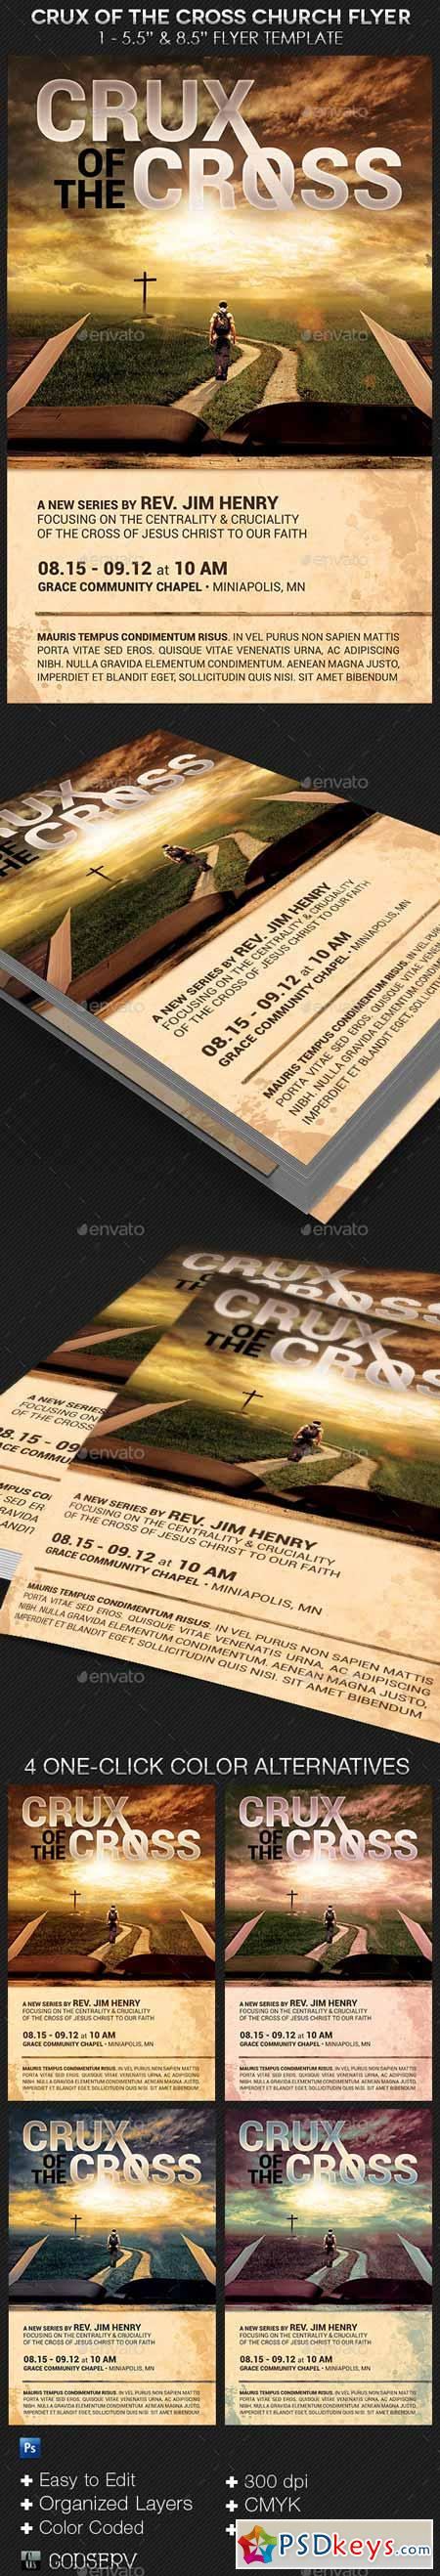 crux of the cross church flyer template 8574732 crux of the cross church flyer template 8574732